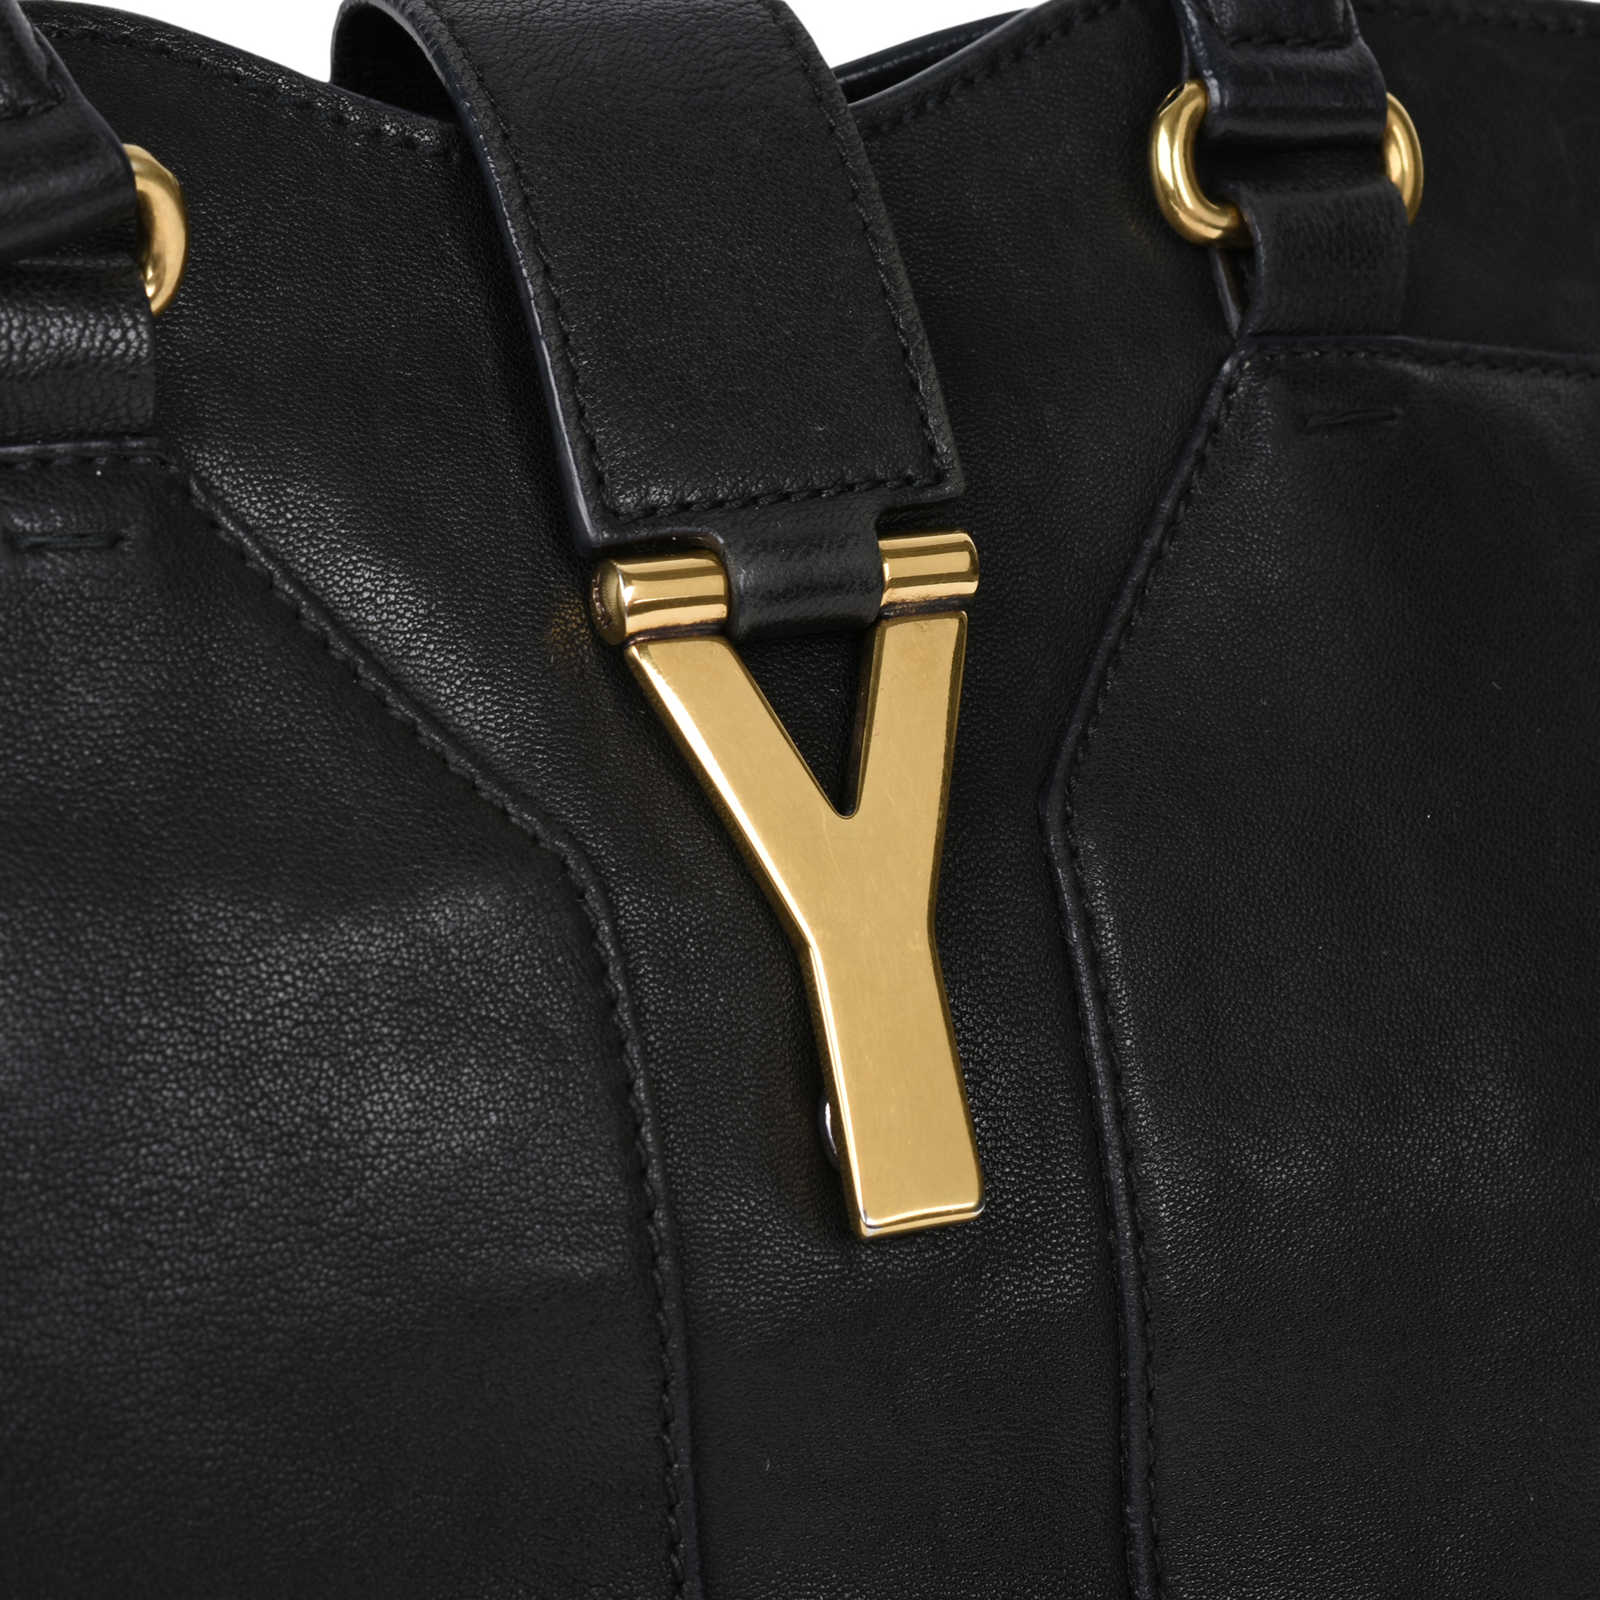 4ce84a692244 ... Authentic Second Hand Yves Saint Laurent Cabas Chyc Tote  (PSS-506-00011) ...